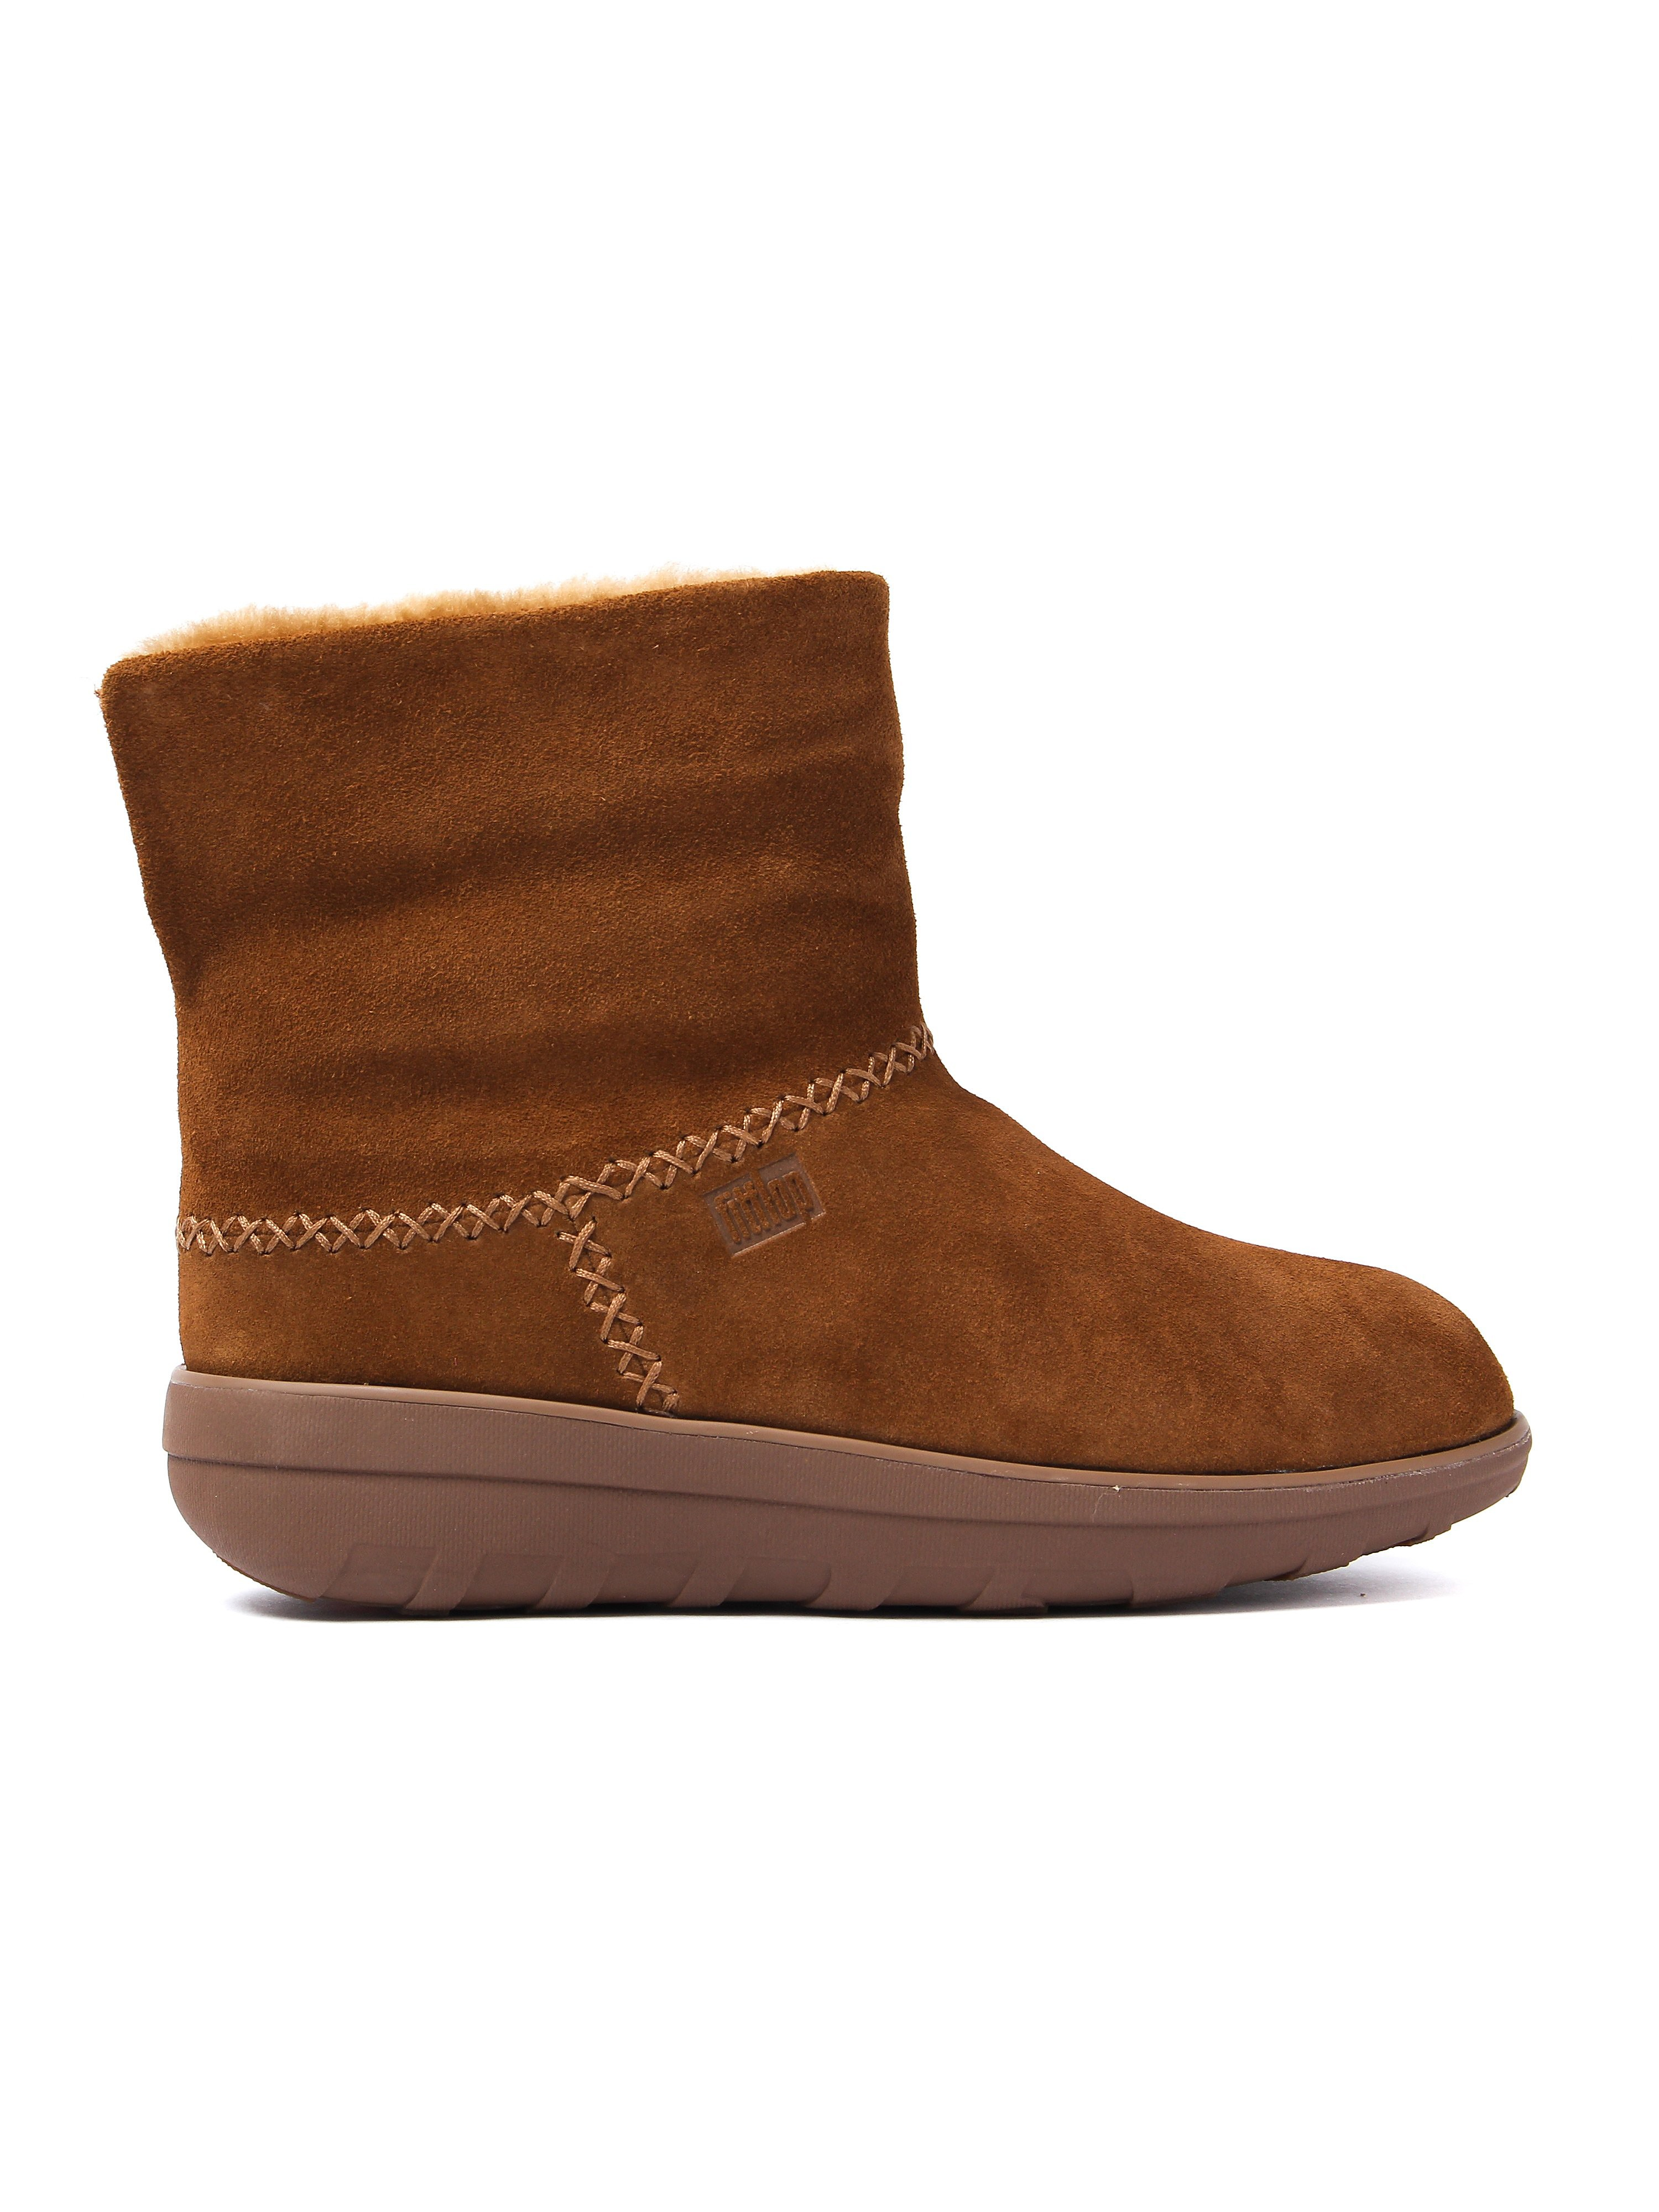 FitFlop Women's Mukluk Shorty 2 Boots - Chestnut Suede